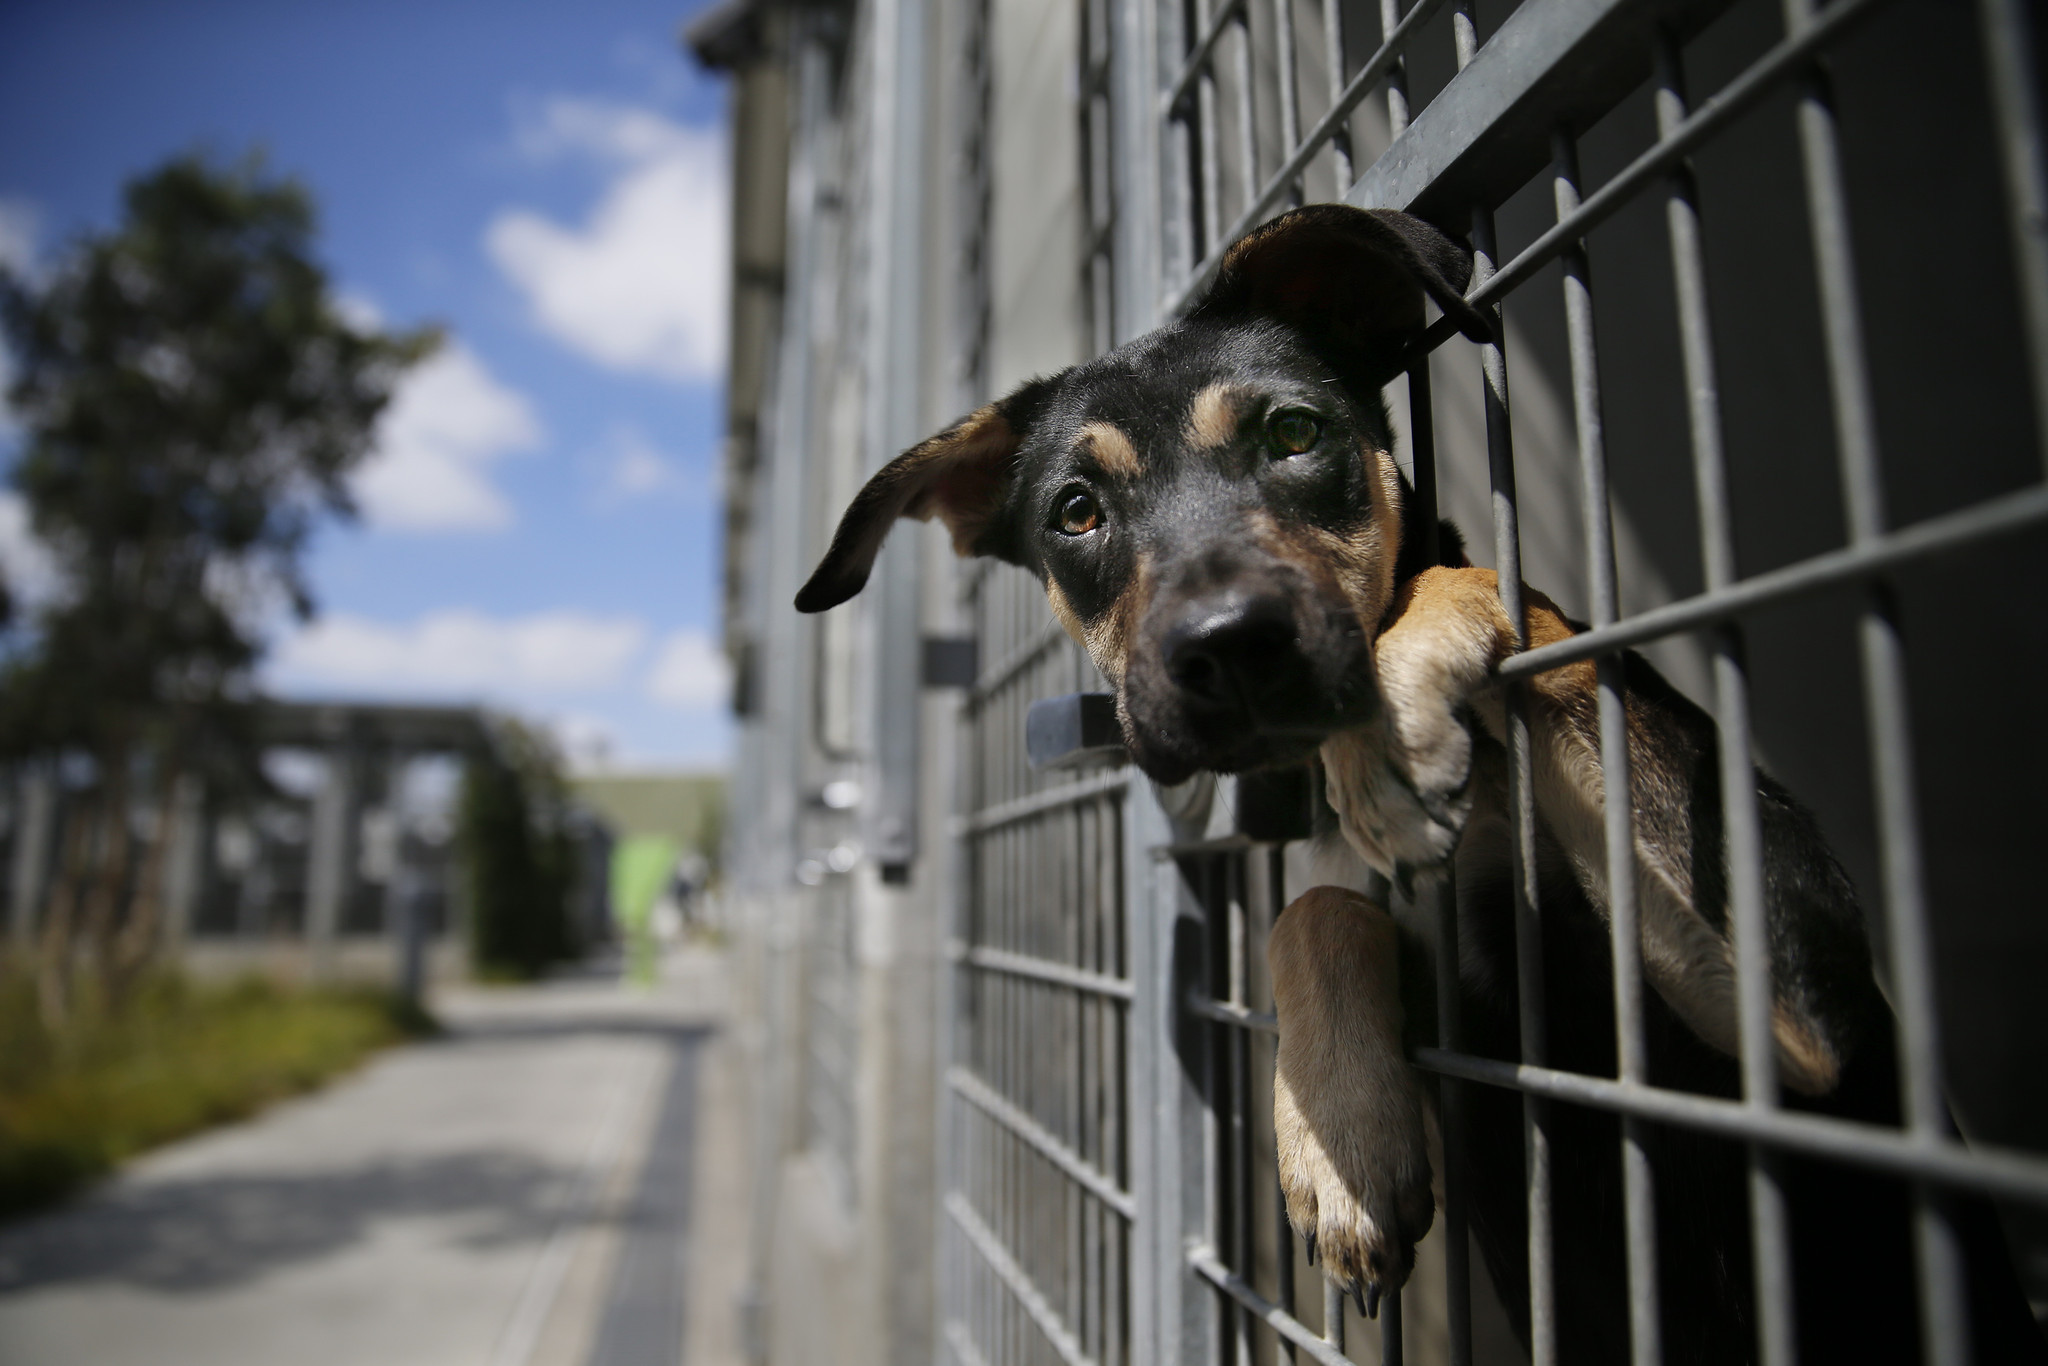 animal shelters need our help